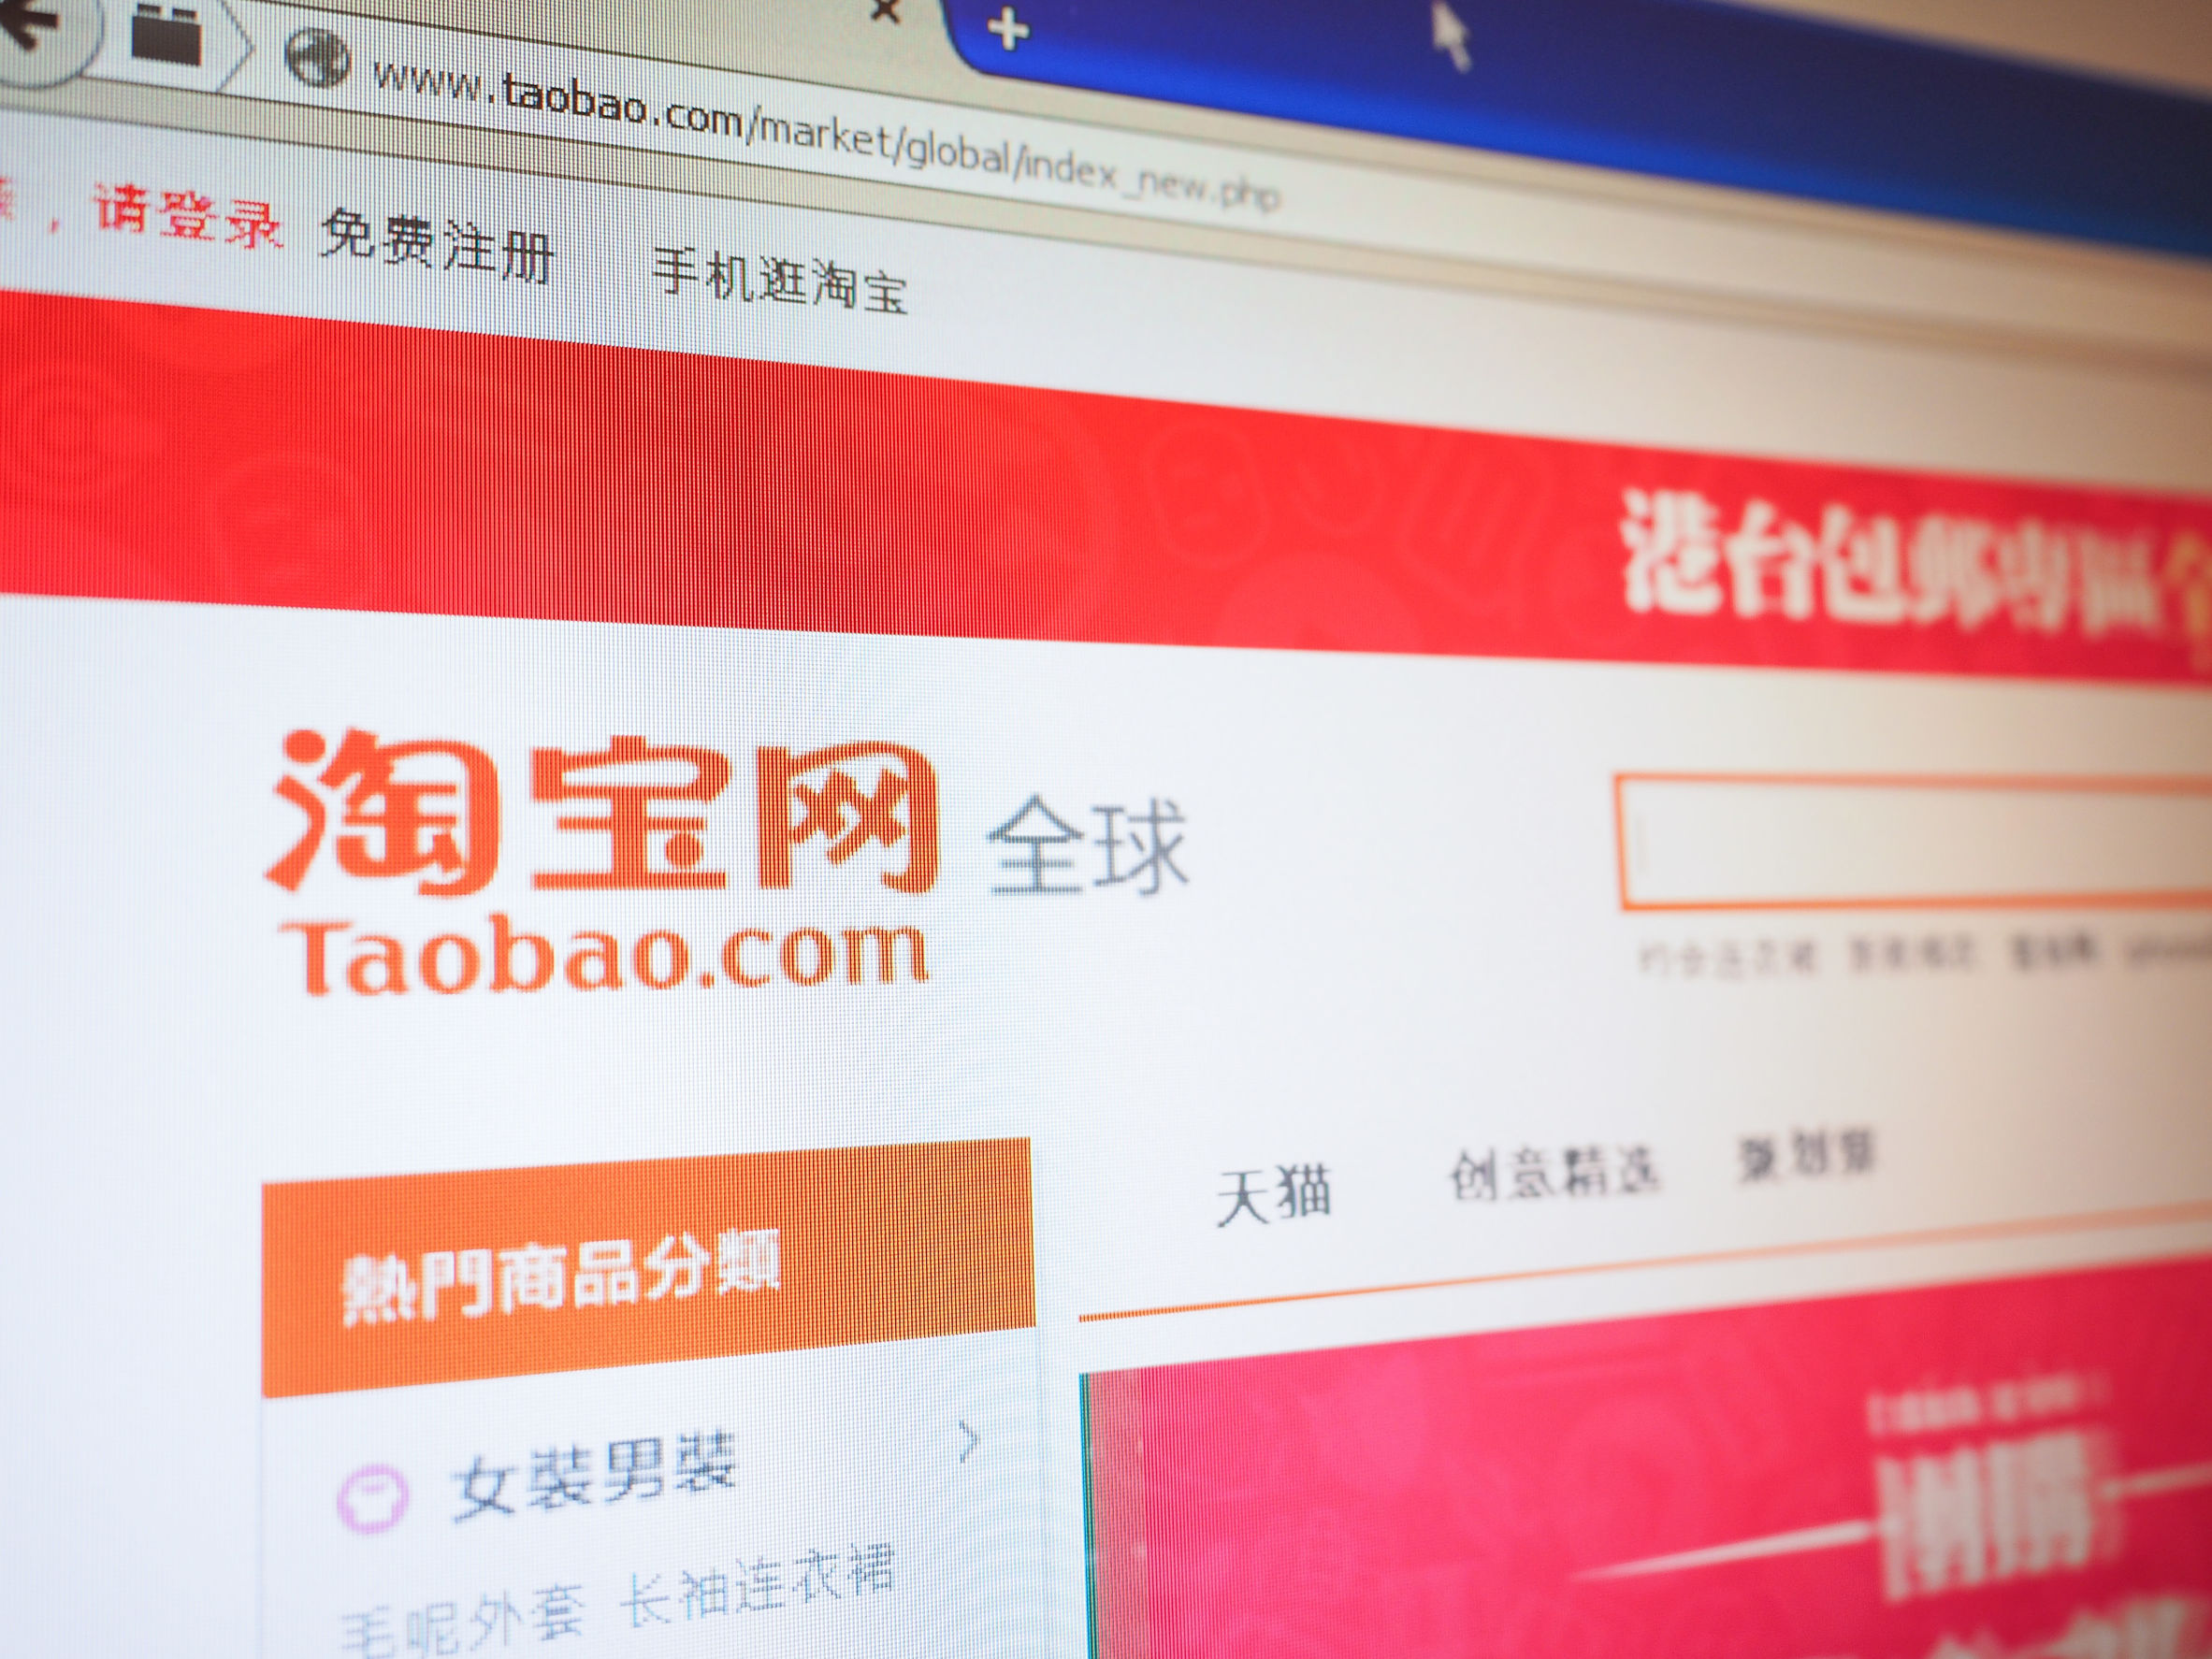 Alibaba wants its 693 million users to become dropshippers